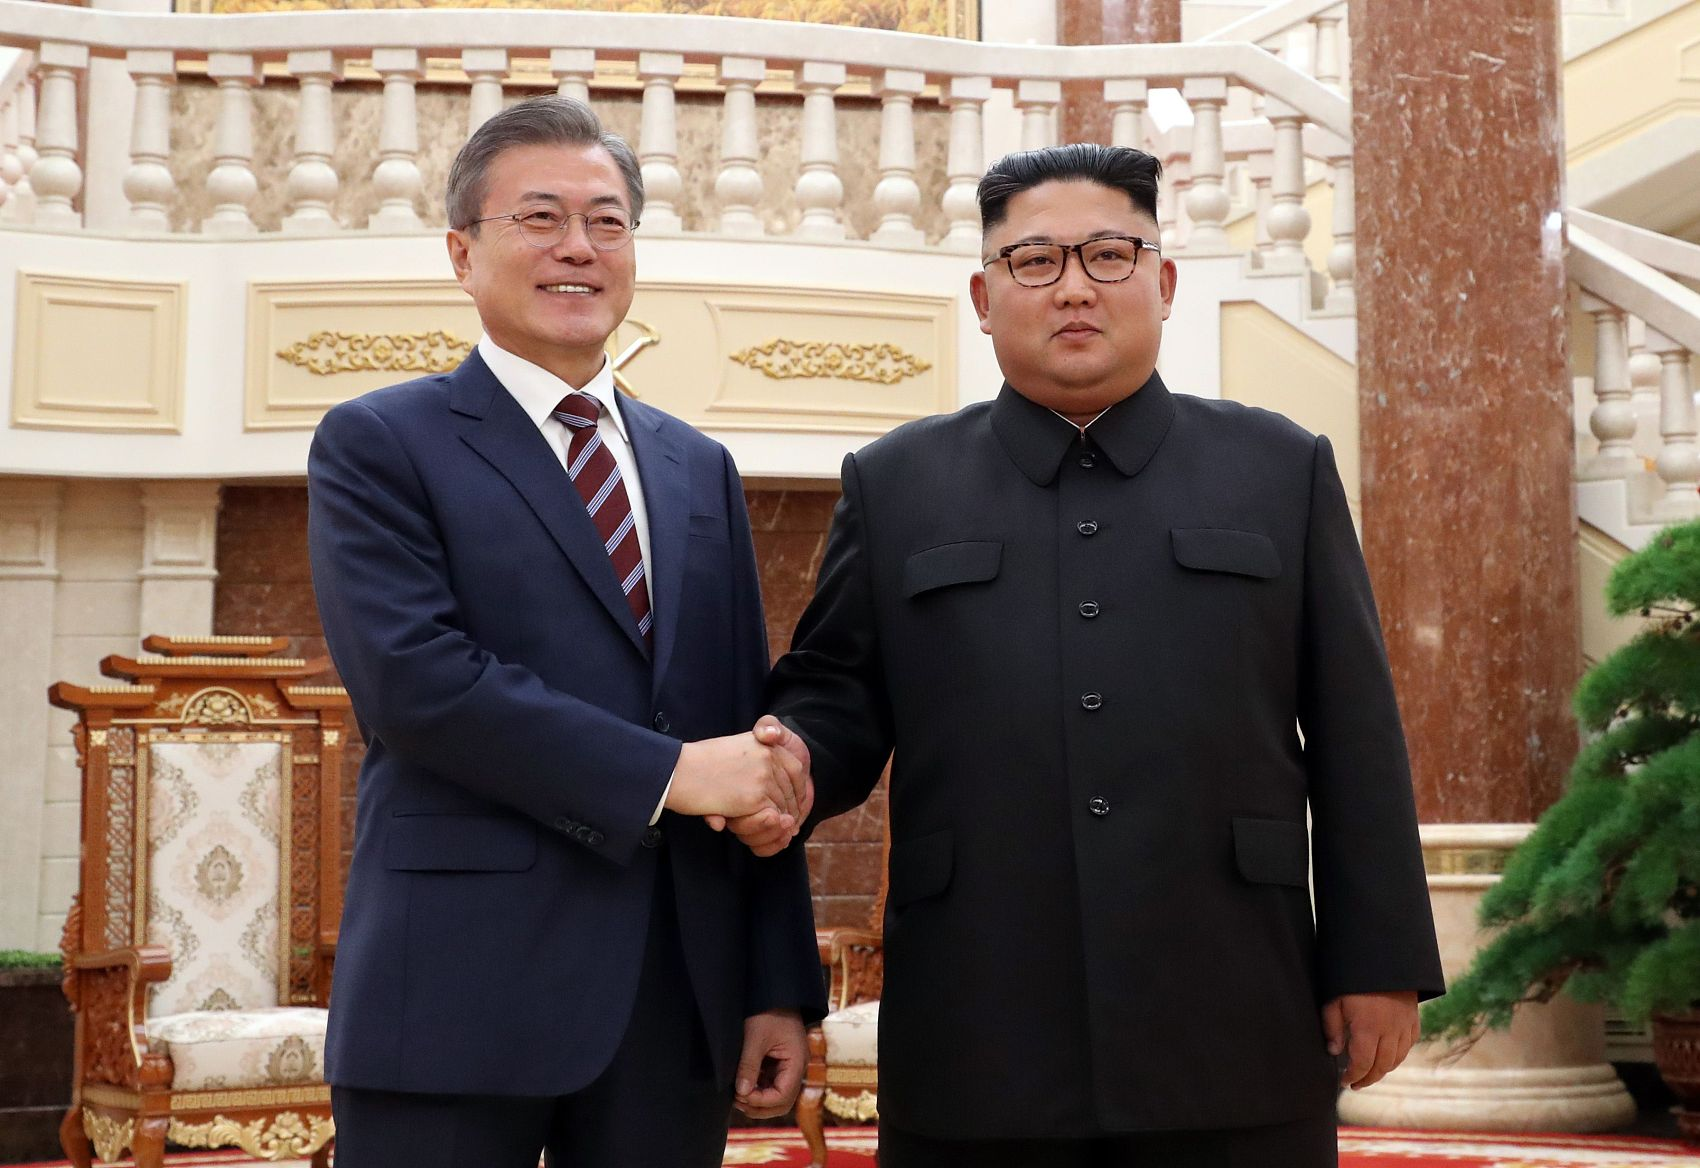 S.Korea to prepare well for possible visit by DPRK leader to Seoul: ministry